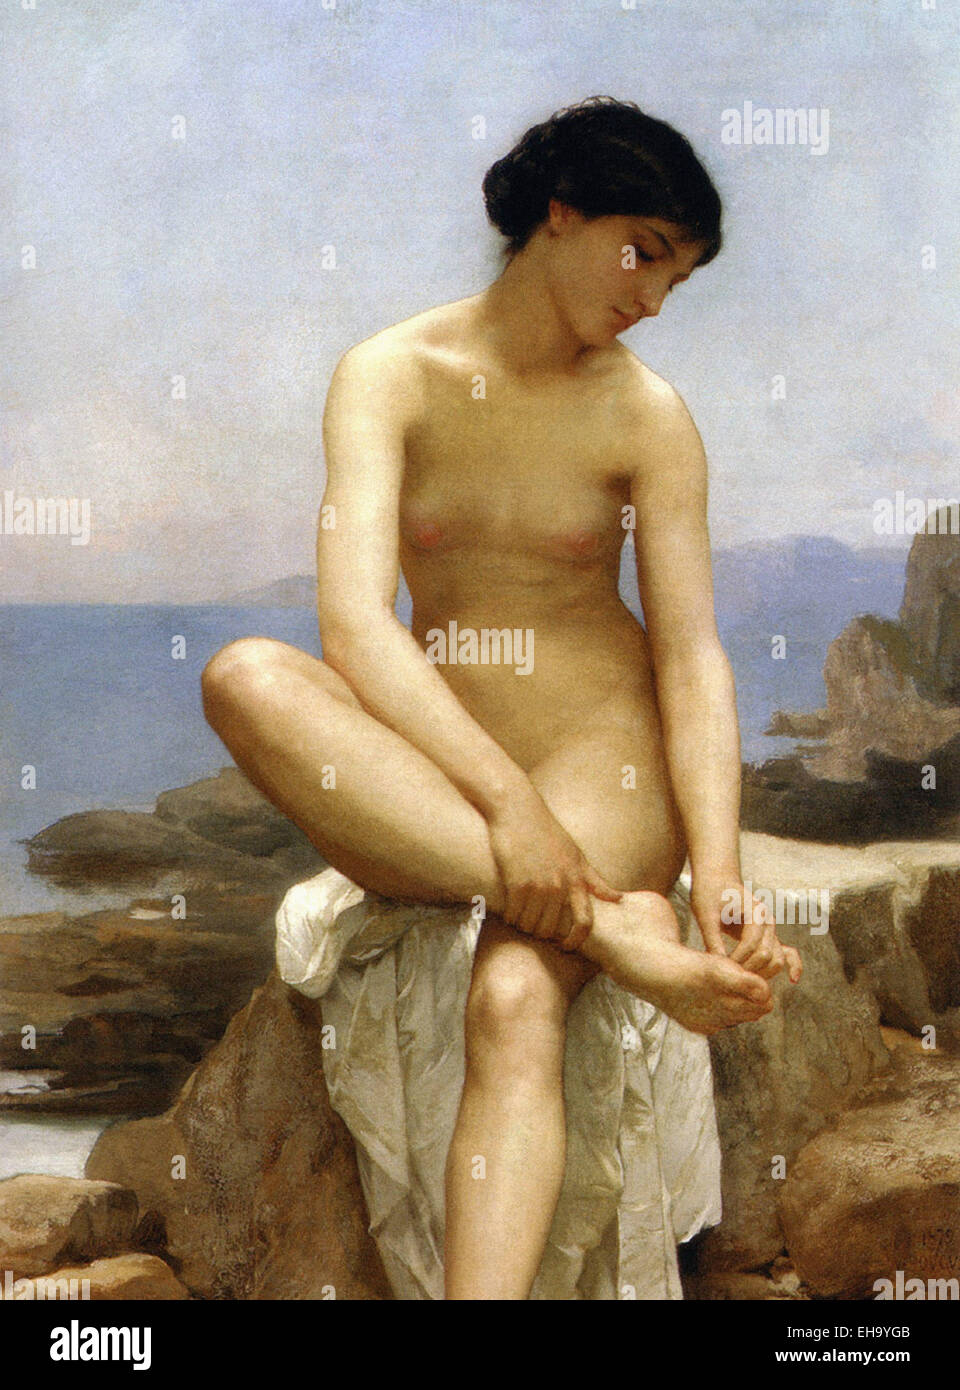 William Bouguereau  The Bather - Stock Image